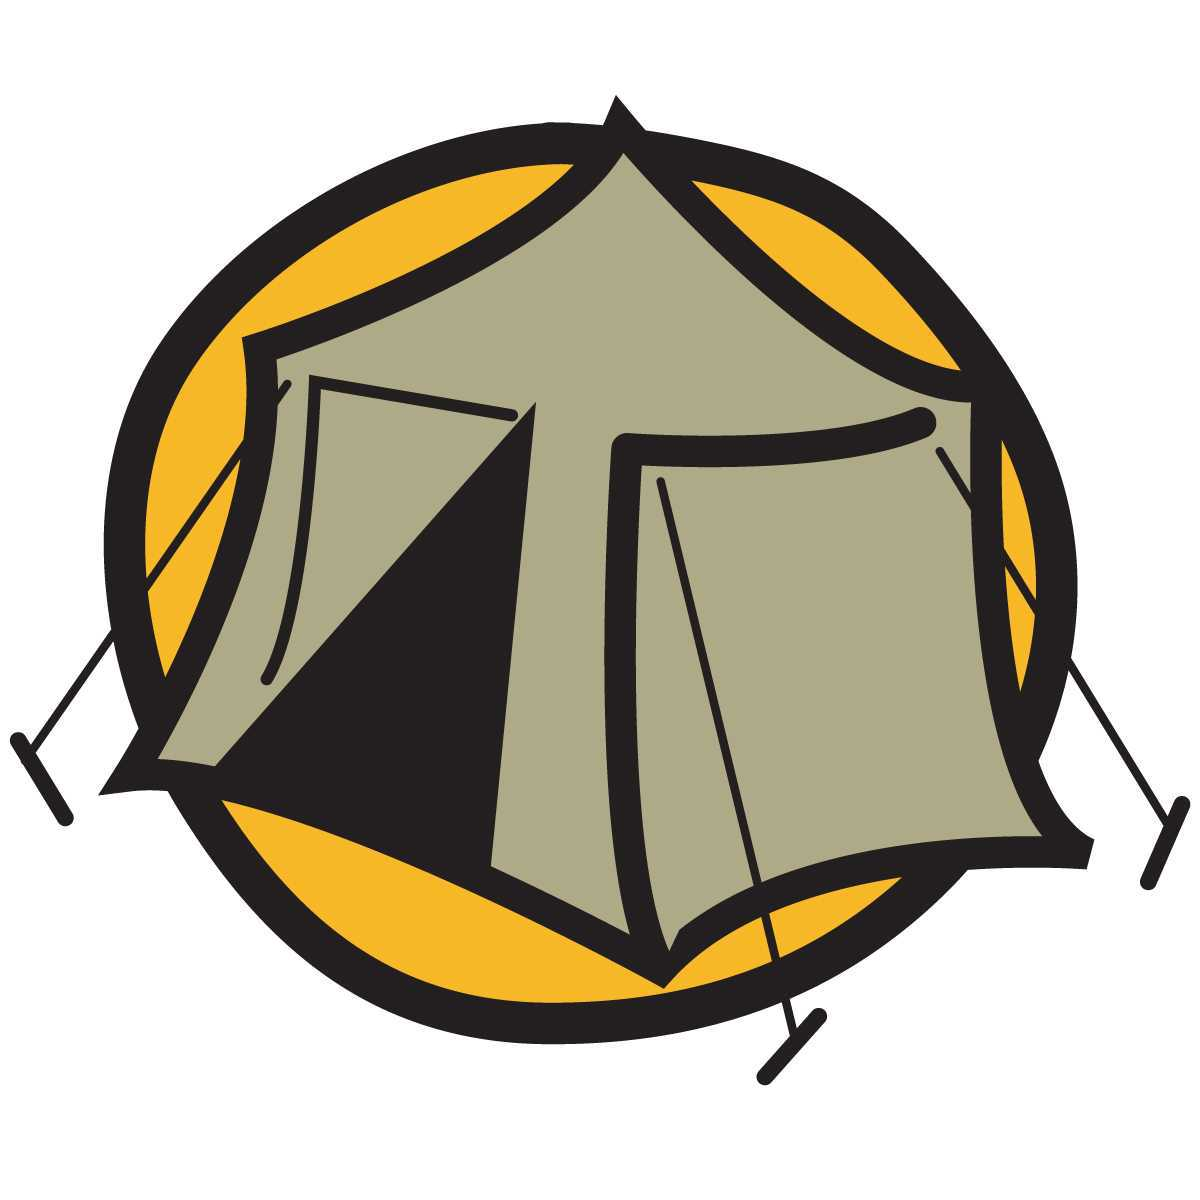 1200x1200 Camping Tents Clip Art Lovely Tent Camping Pictures Free Download